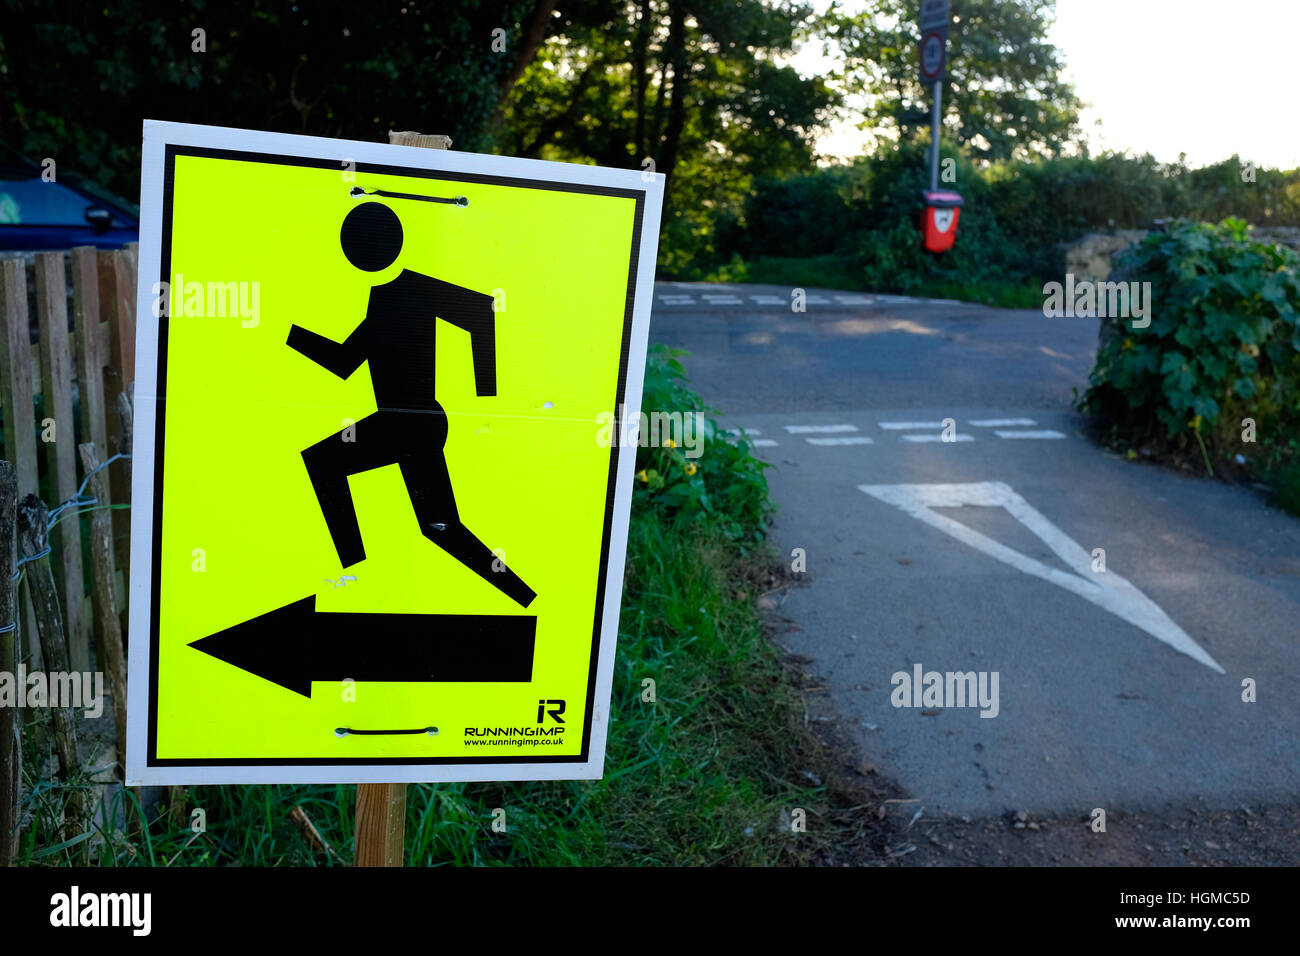 running triathlon road race this way man graphic sign rural road to the left move run sprint jog jogging arrow silhouette - Stock Image